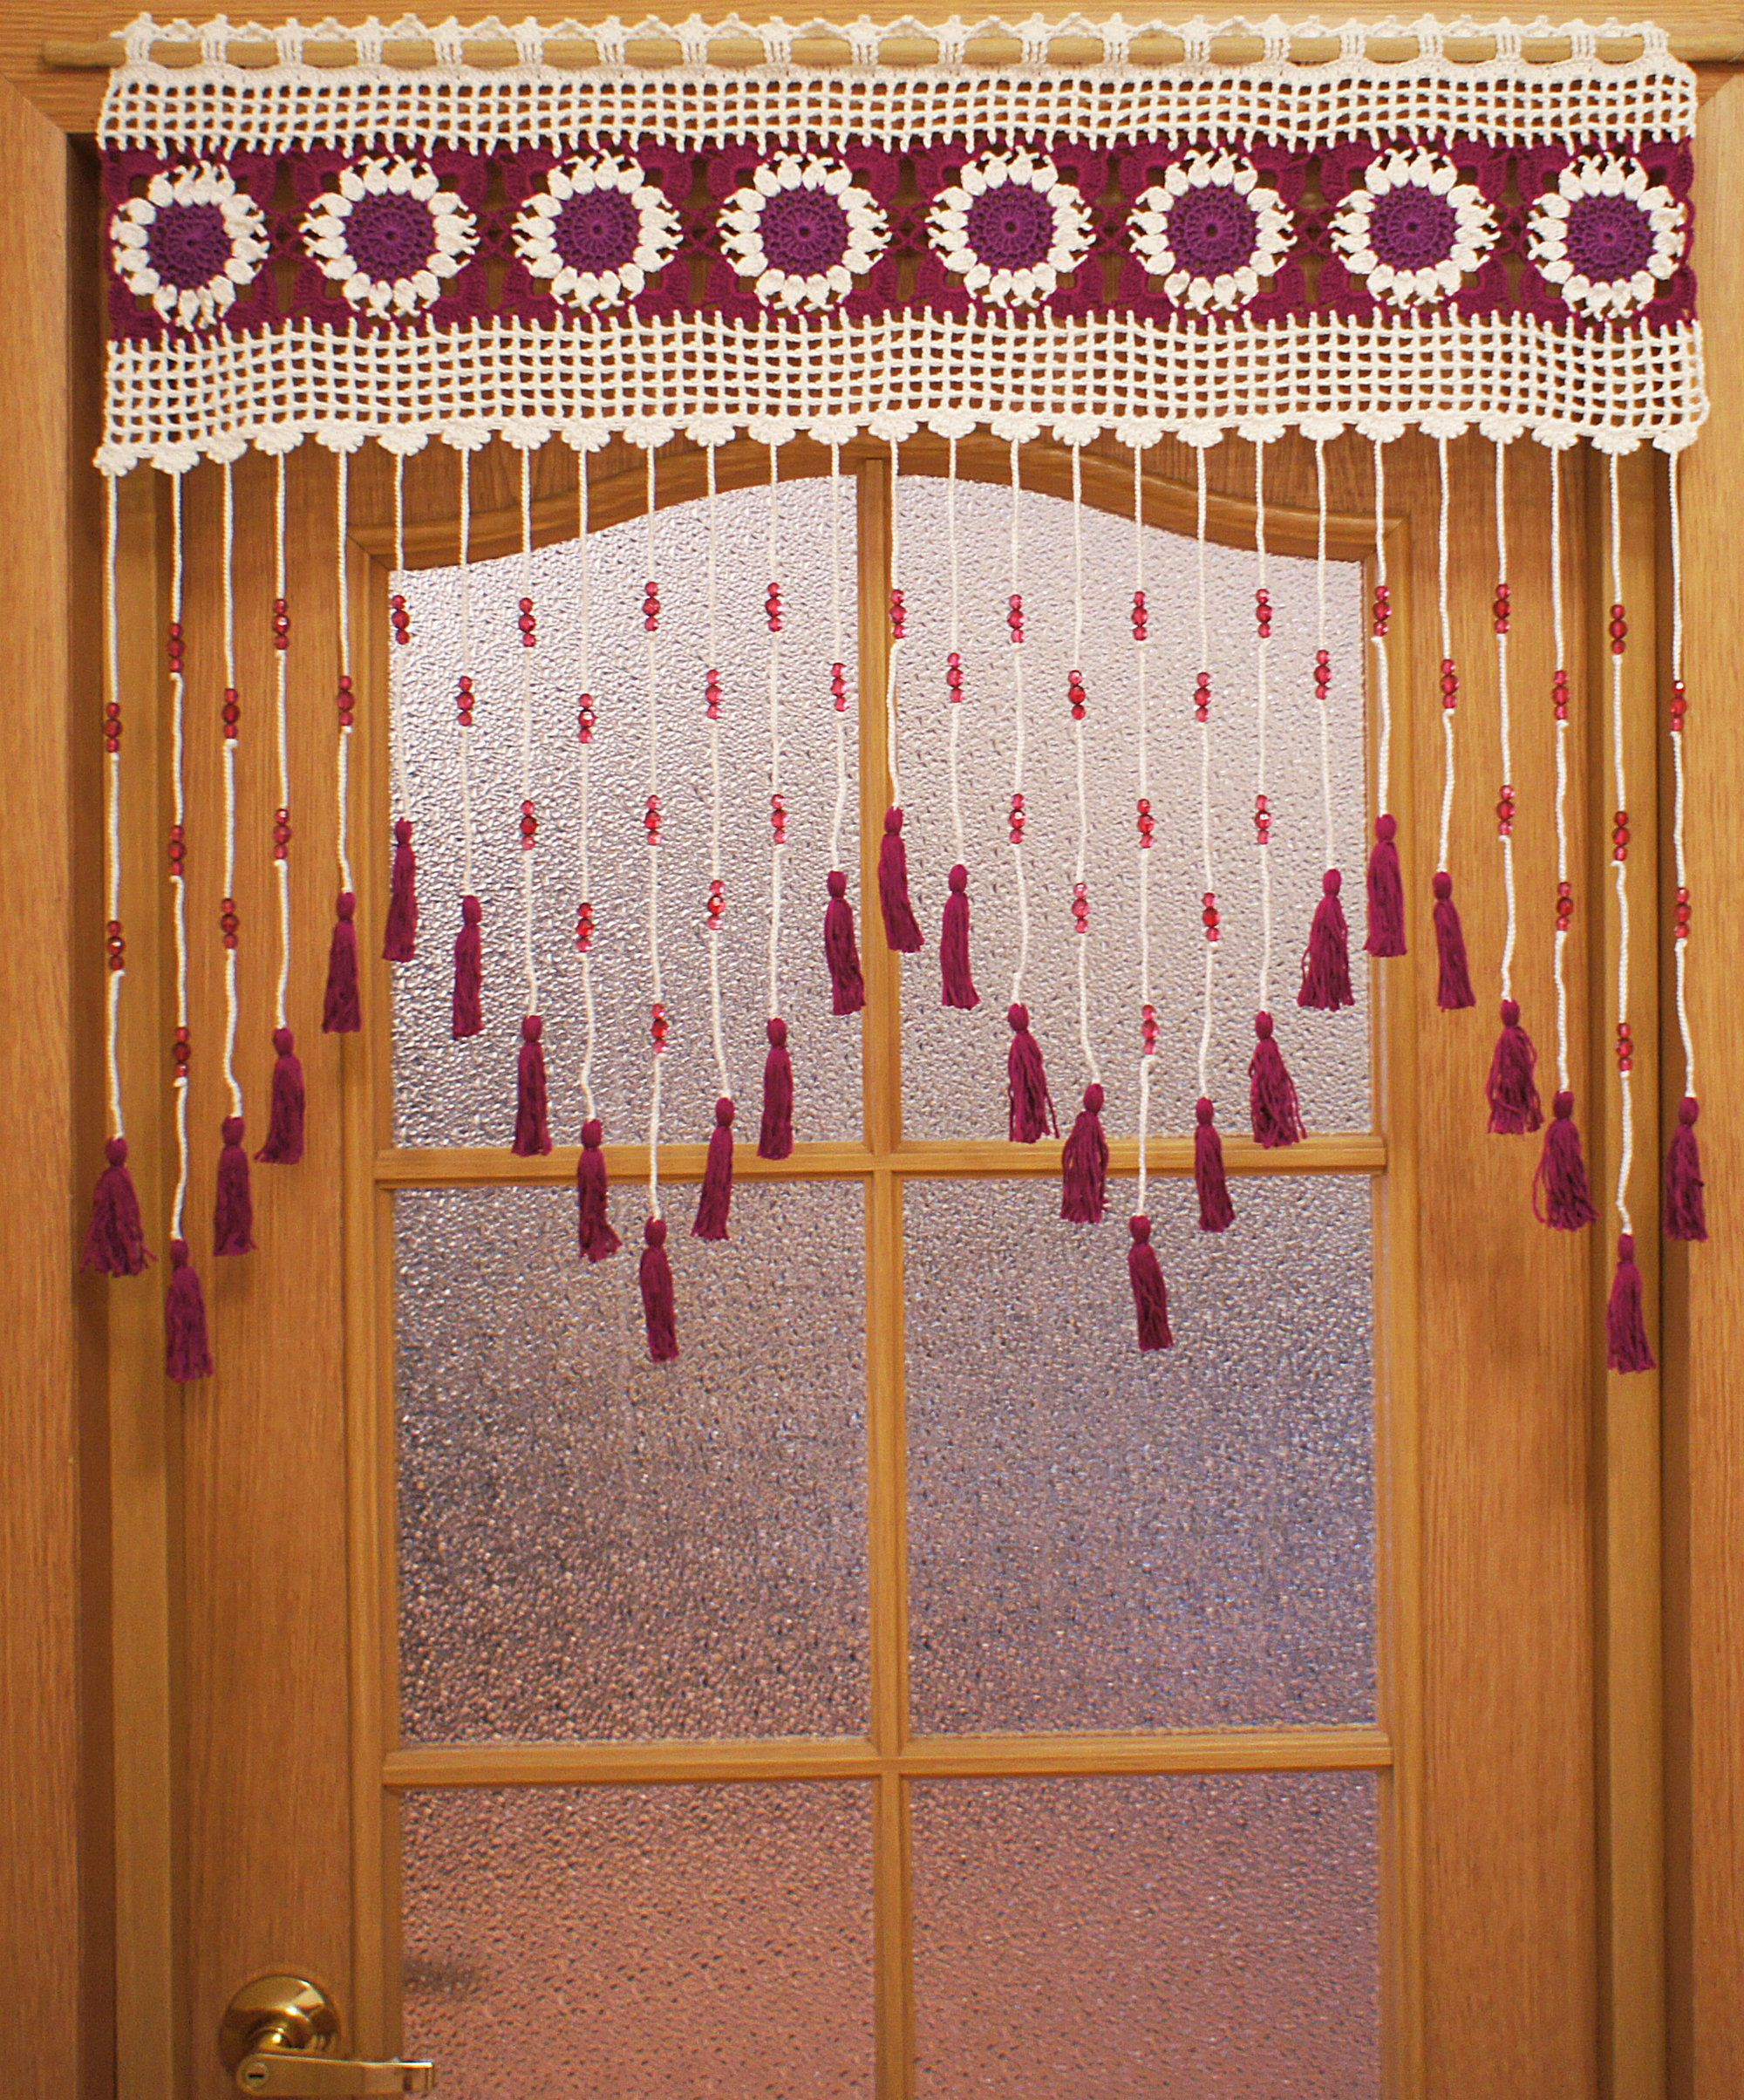 Bead Curtains With Tassels Door Beads In White And Purple Etsy In 2020 Door Beads Tassel Curtains Crochet Curtains